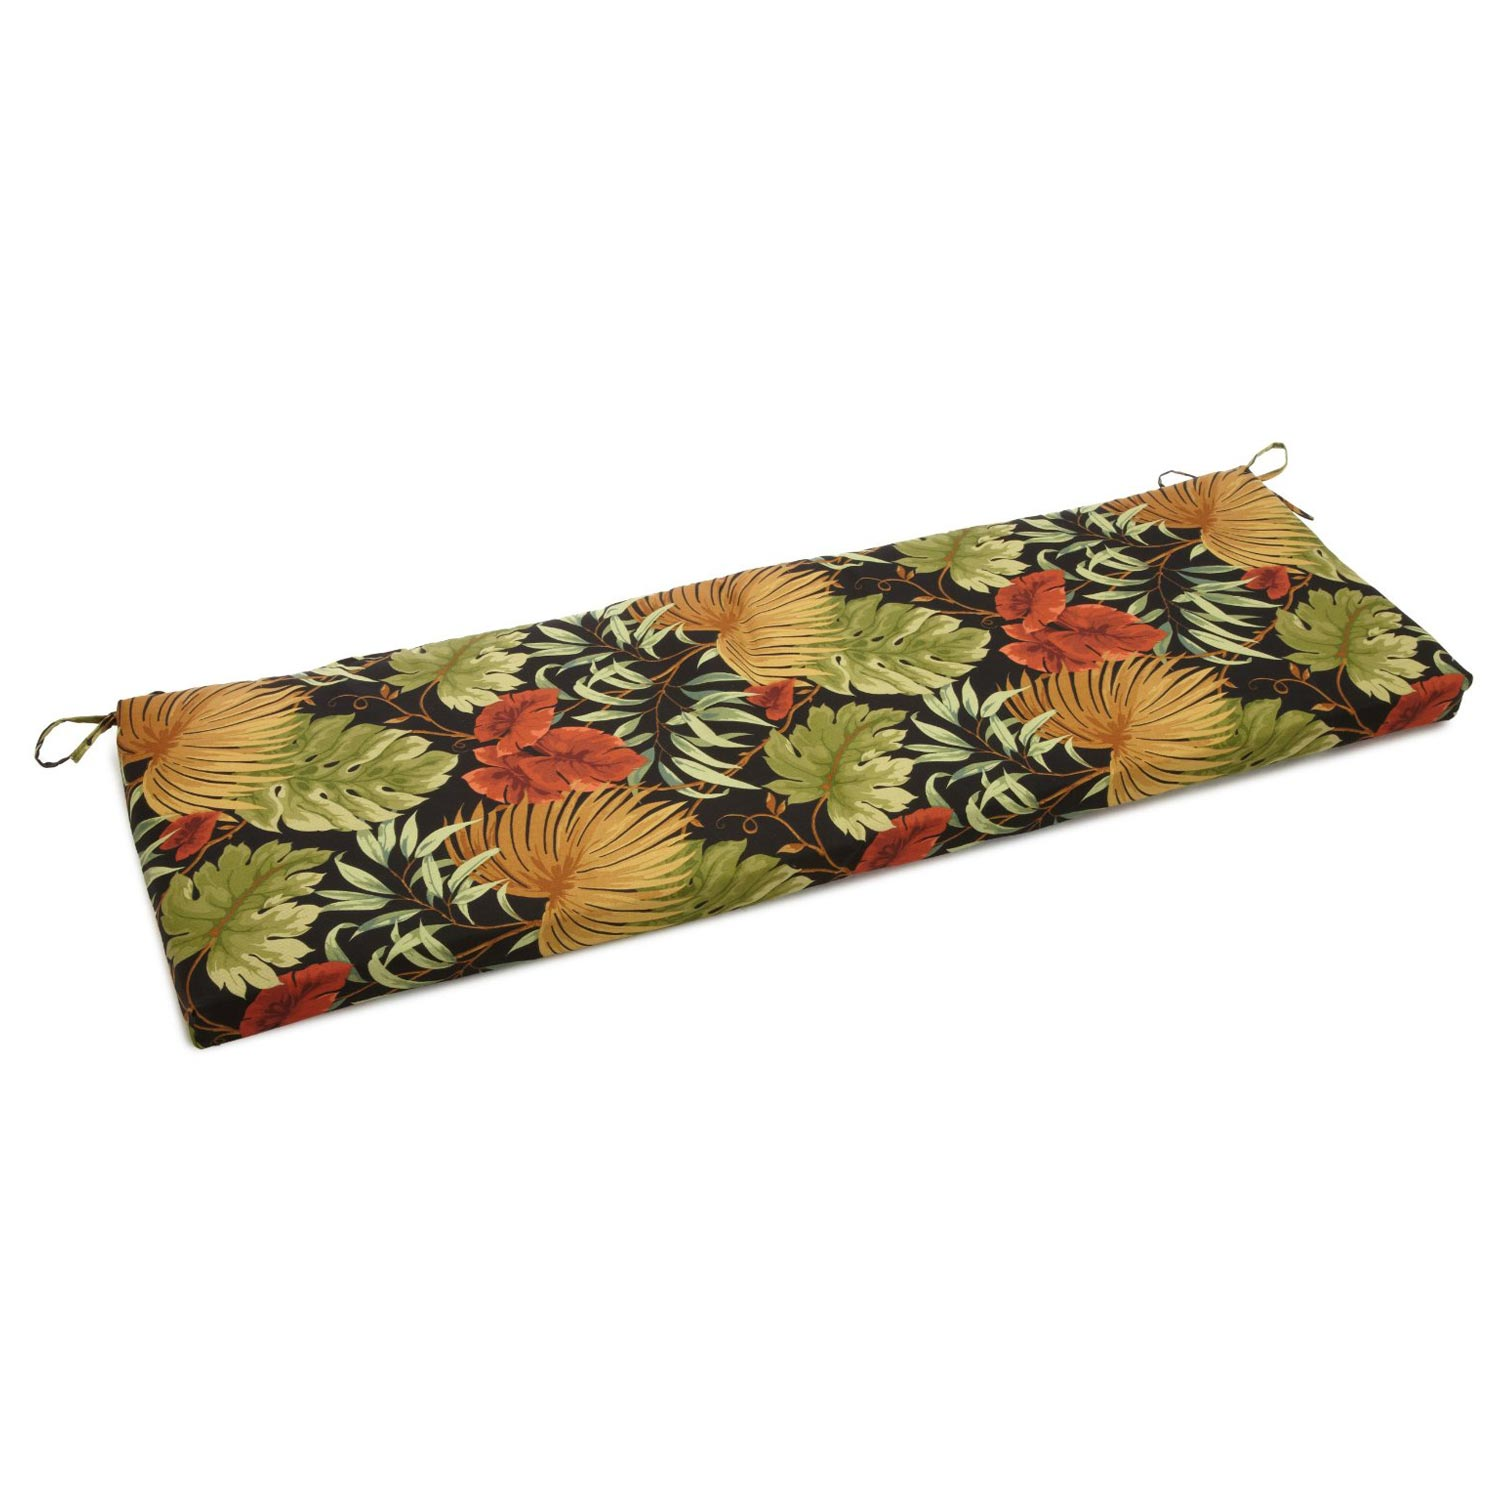 51 Quot X 19 Quot Patio Bench Swing Cushion Ties Patterned